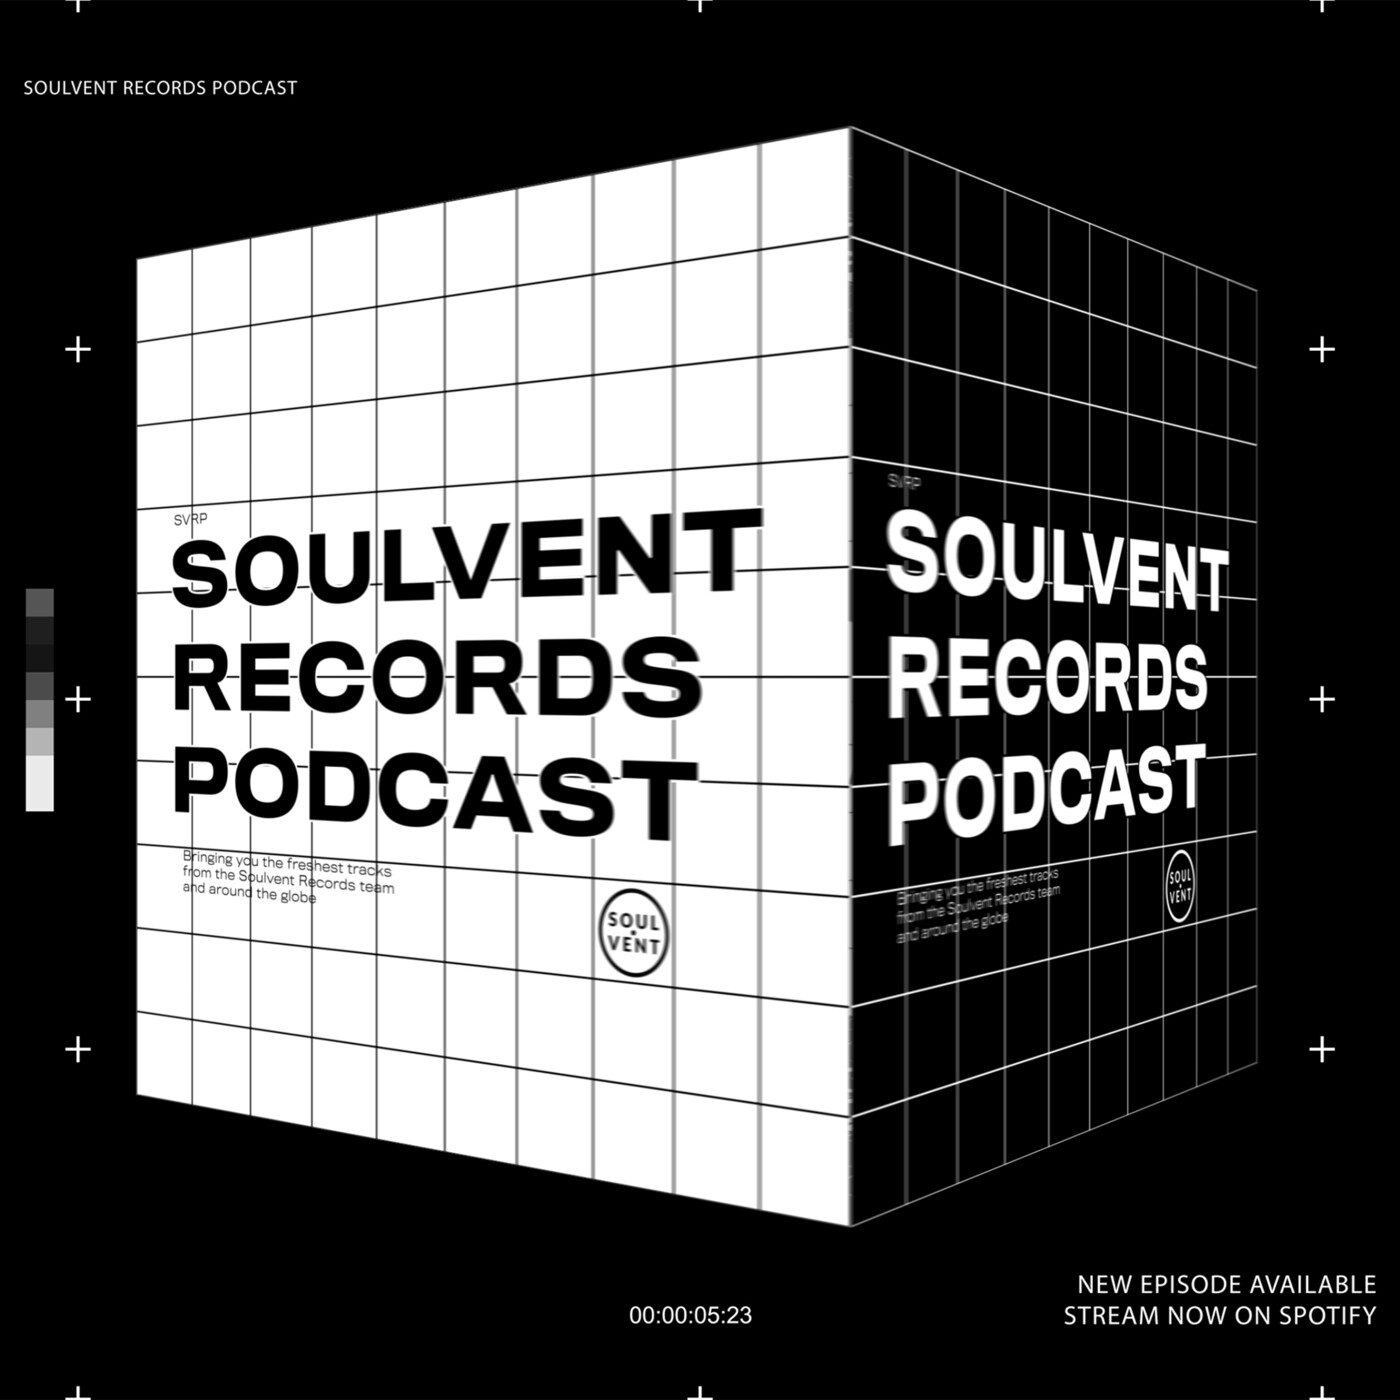 SVR Podcast: Episode 29 (Soul Music 2020 Special!)